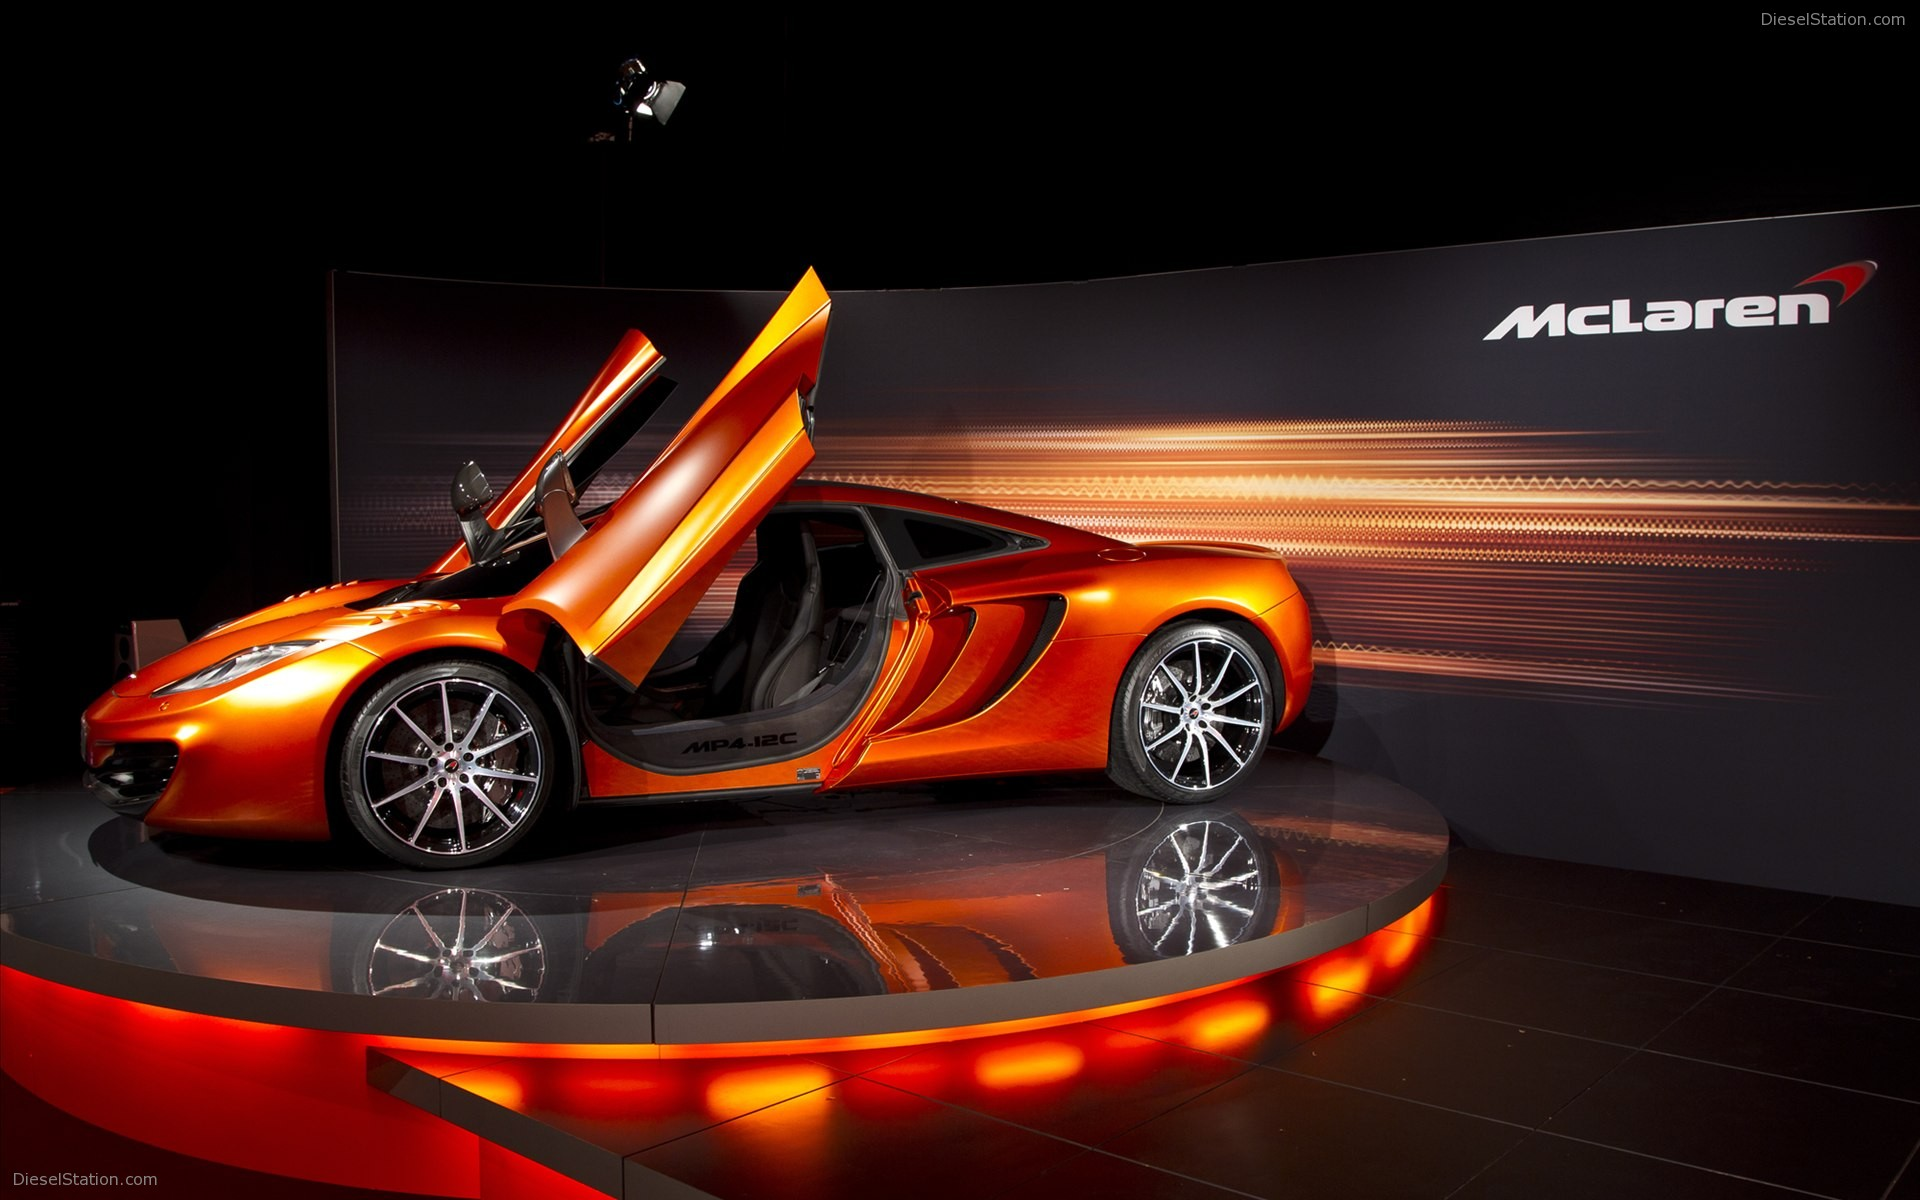 Car Wallpaper High Resolution: McLaren Wallpapers High Resolution